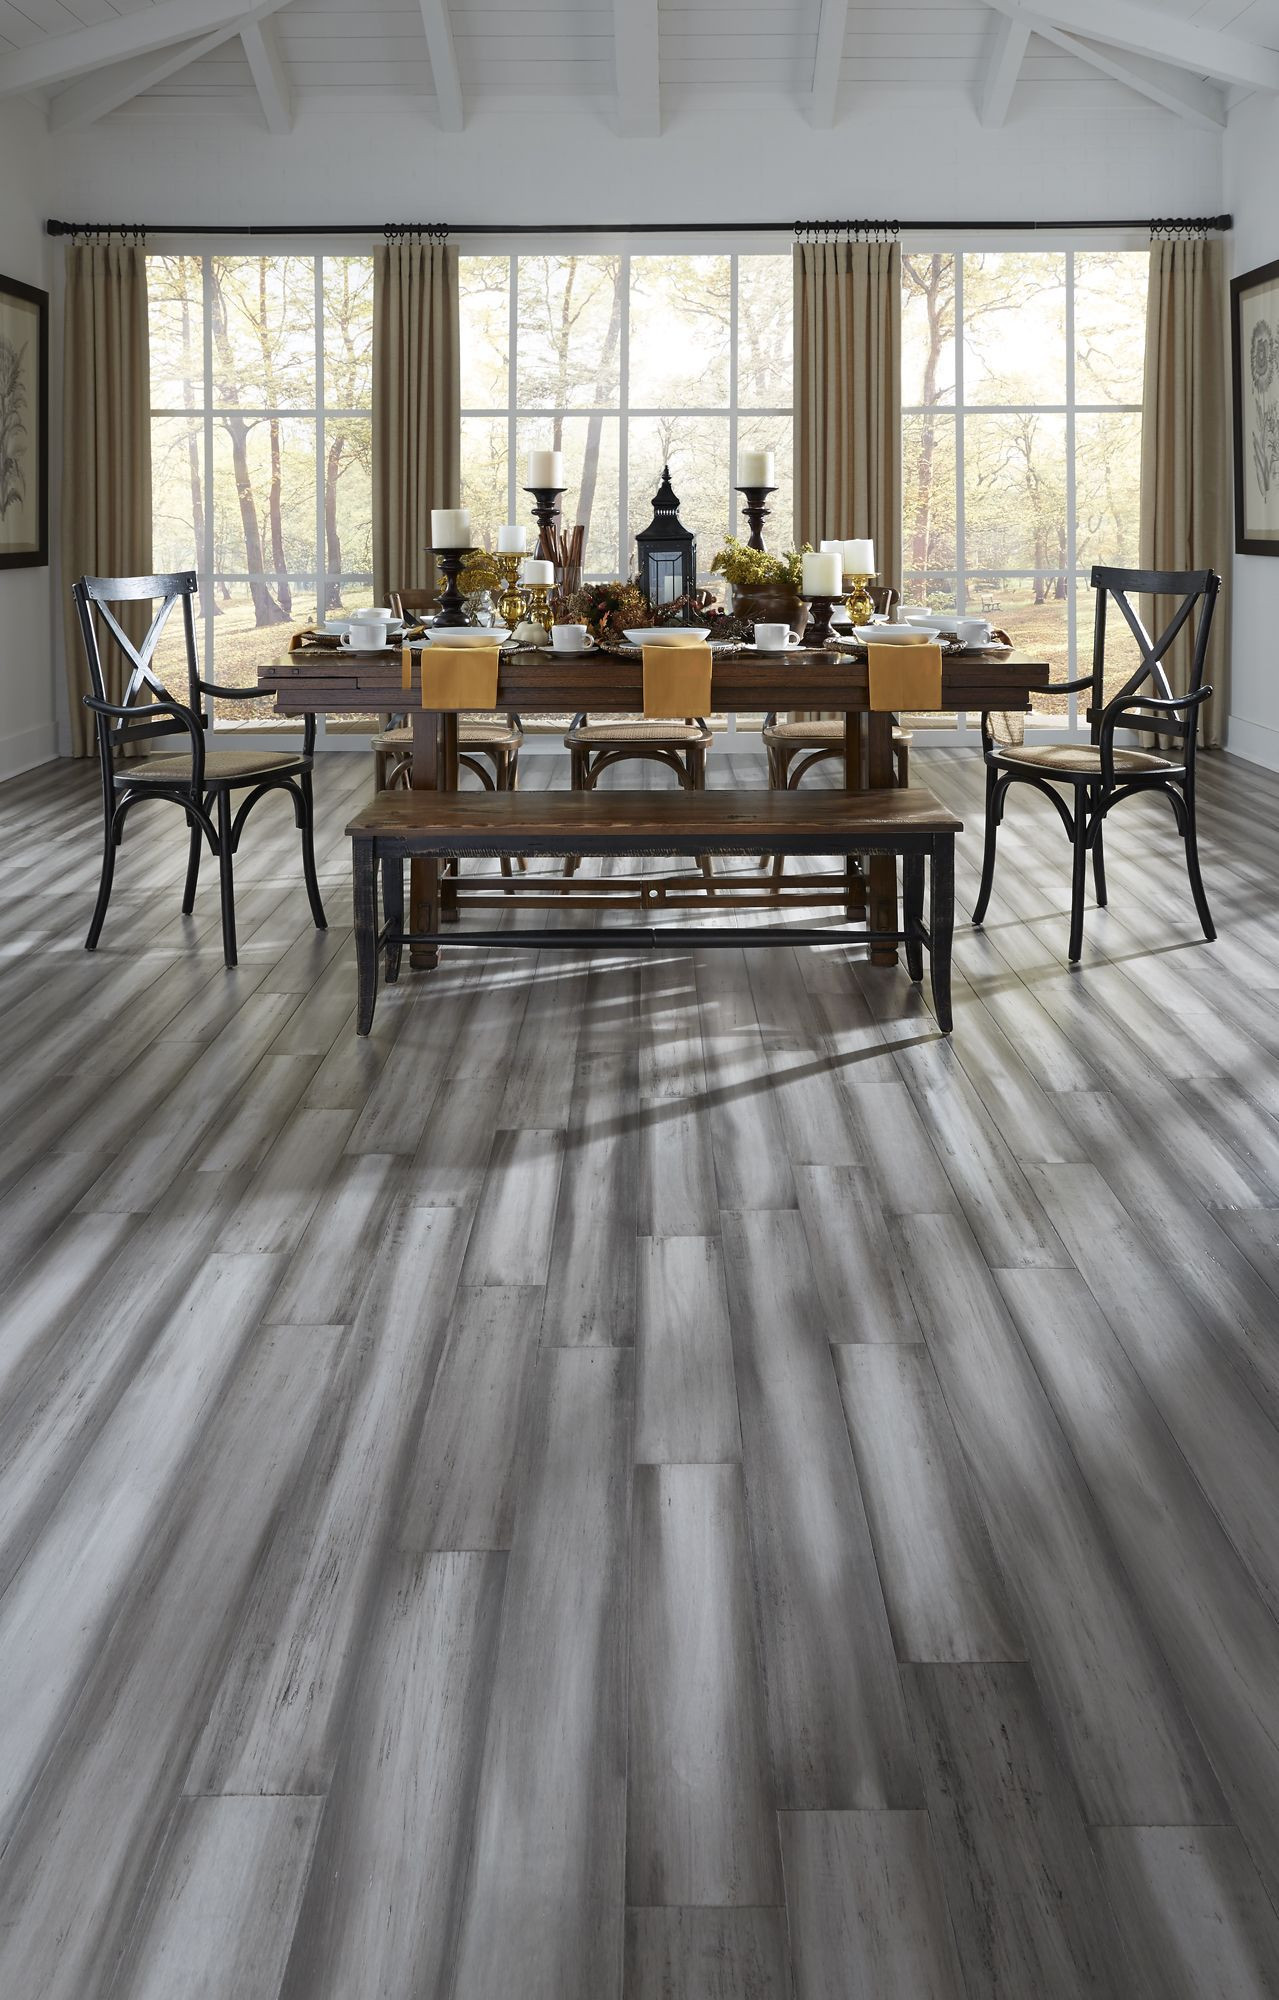 menards engineered hardwood flooring of cheap bamboo flooring tigerwood bamboo flooring menards flooring pertaining to hardwood cheap bamboo flooring modern design and rustic texture pair perfectly with the stately